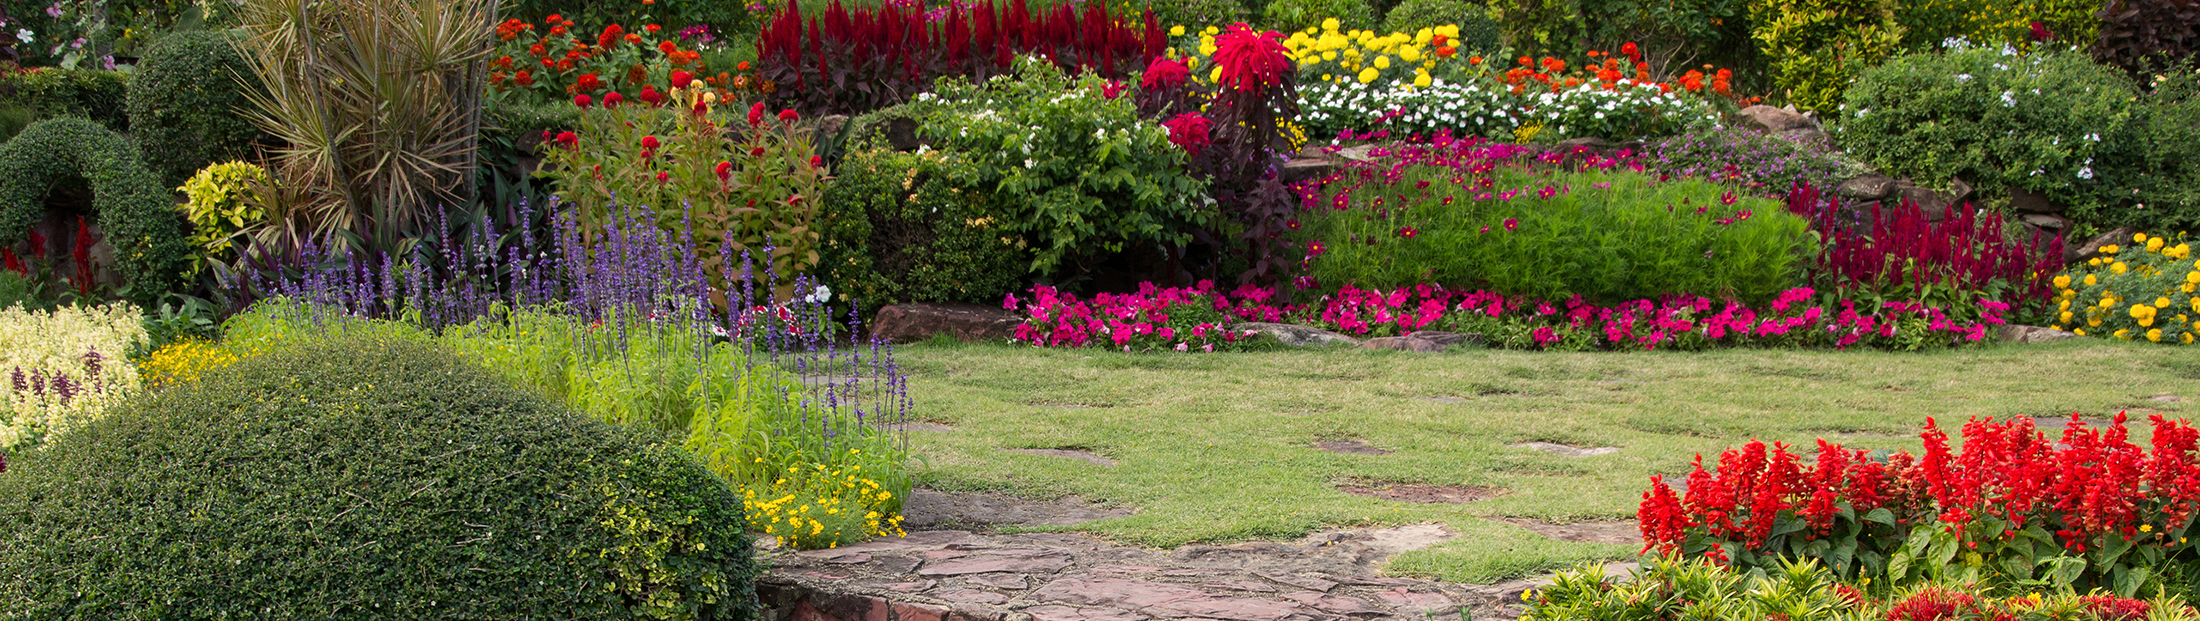 Landscaping-Services-Springfield-MO-1.jpg